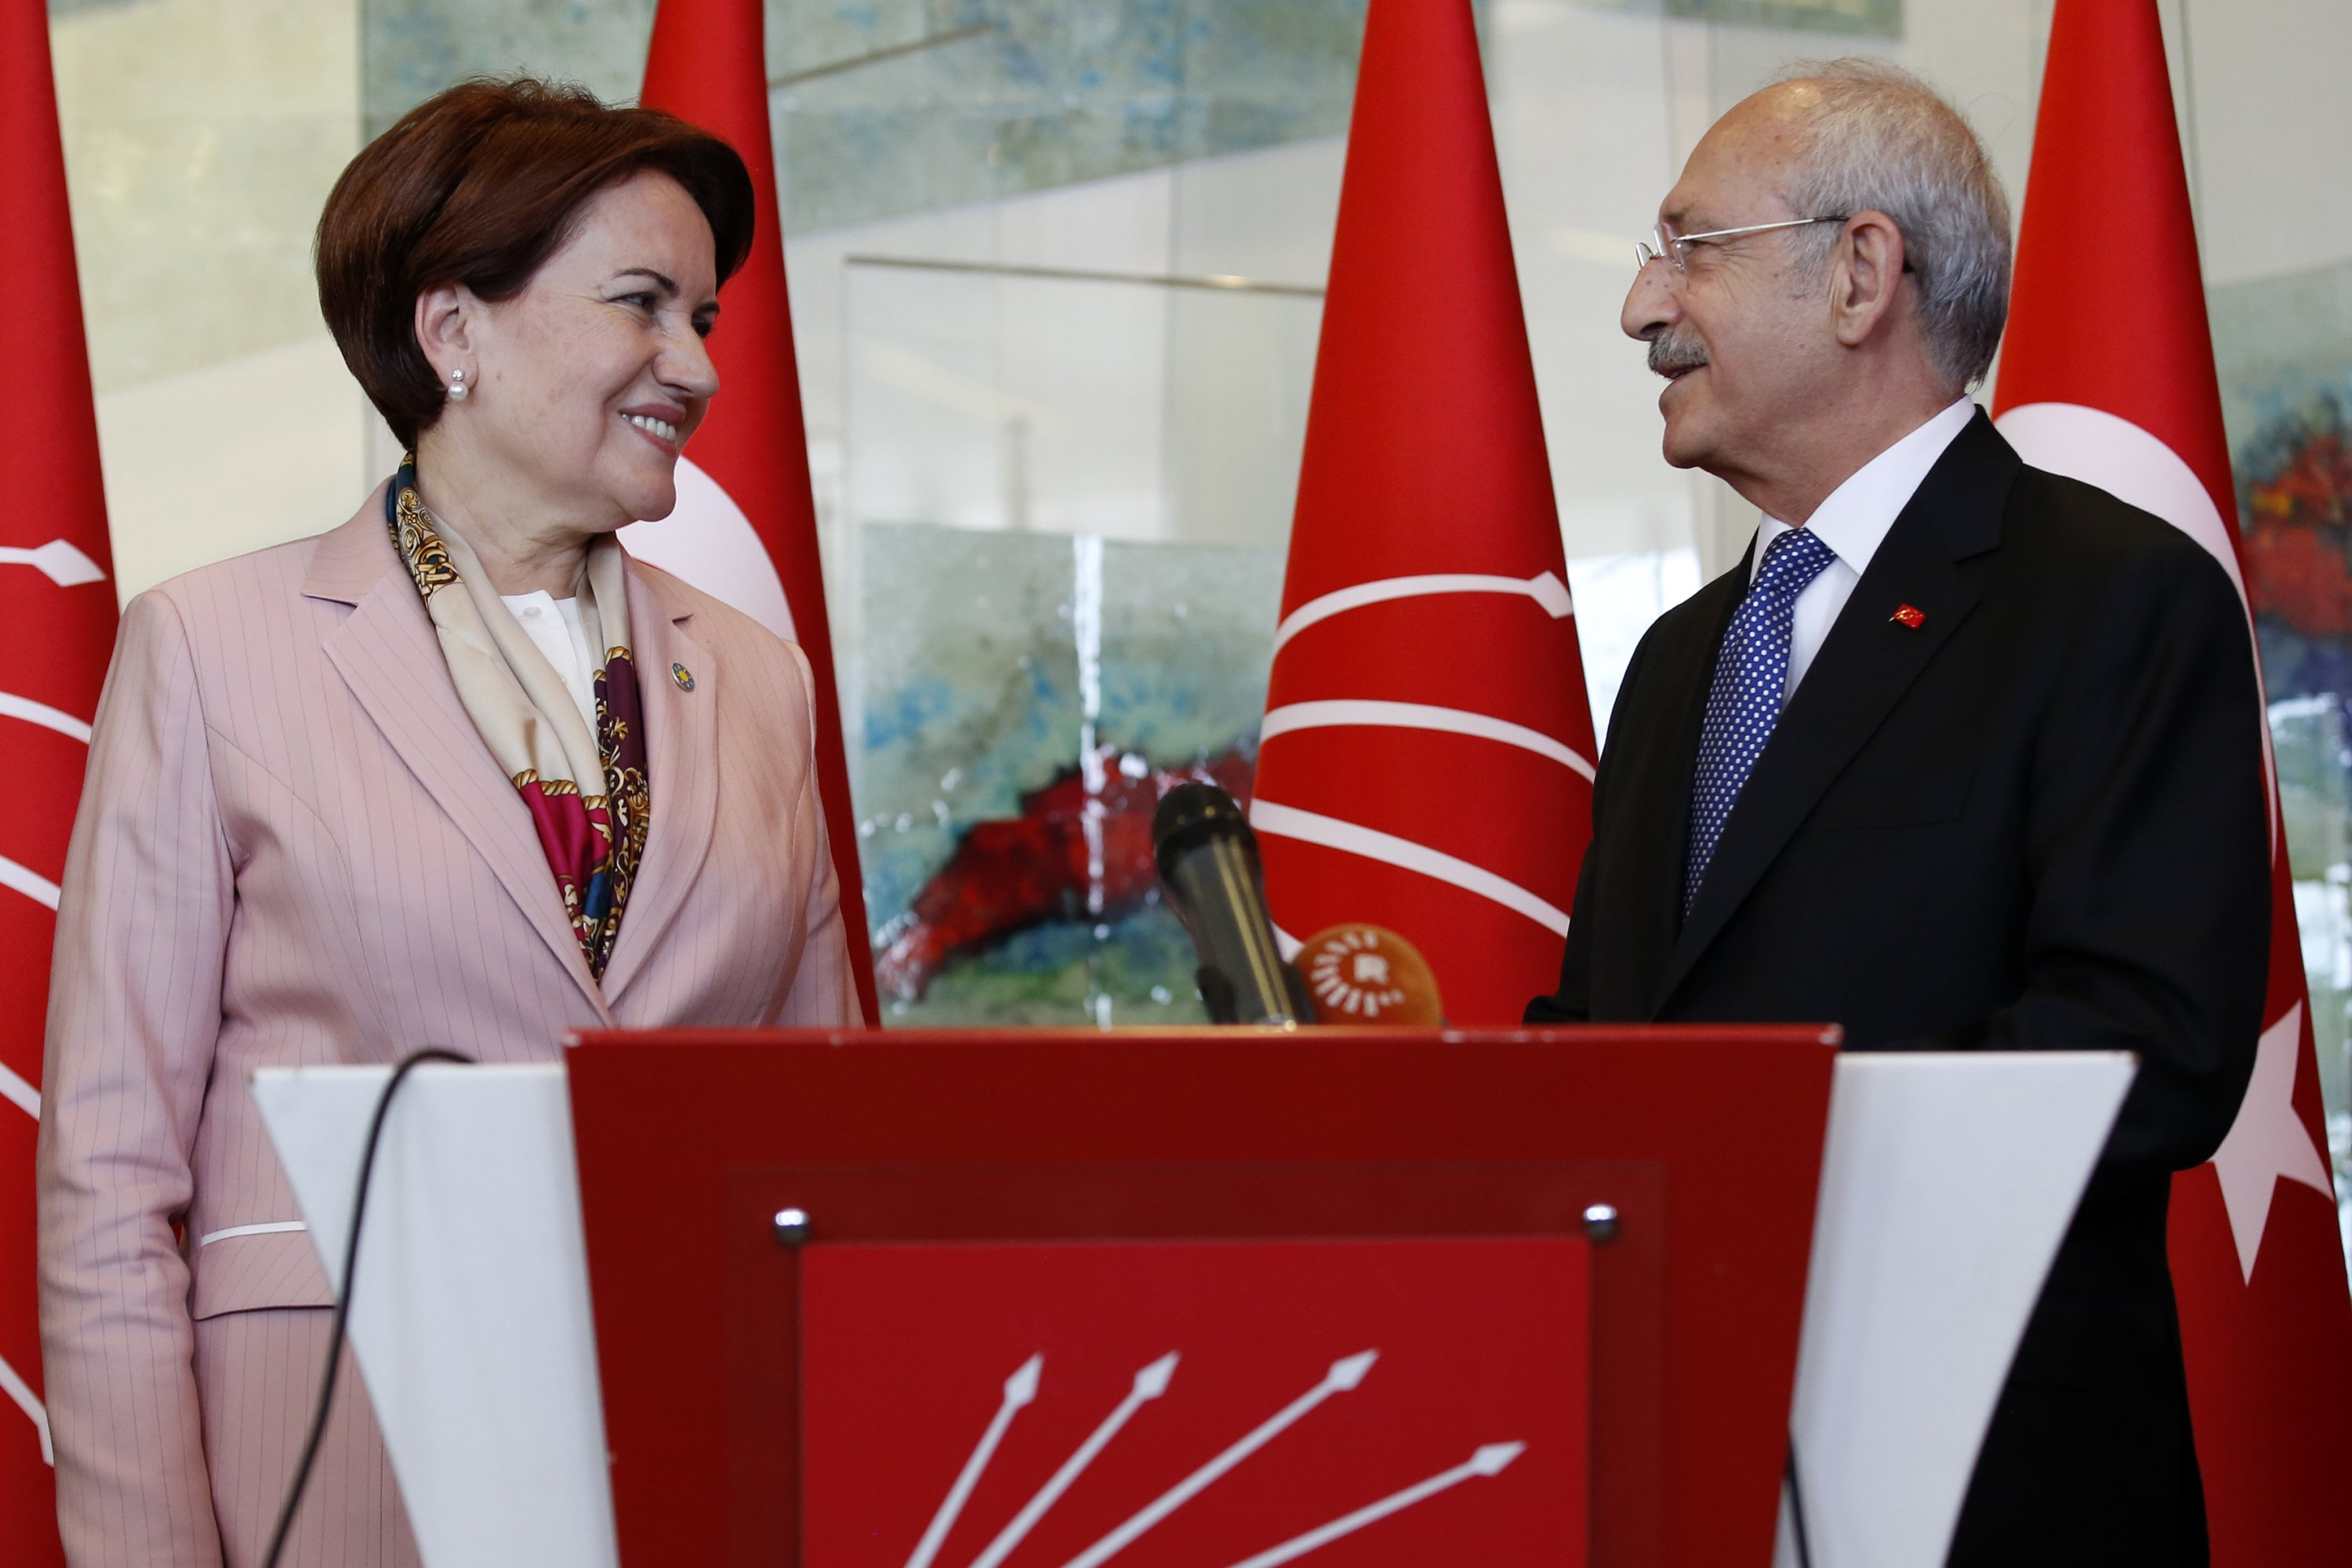 Kemal Kılıçdaroğlu (R), chairperson of the Republican People's Party (CHP) and leader of the Good Party (IP), Meral Akşener (L) give a joint press conference at the CHP Headquarters in Ankara, Turkey, April 25, 2018. (Getty Images)